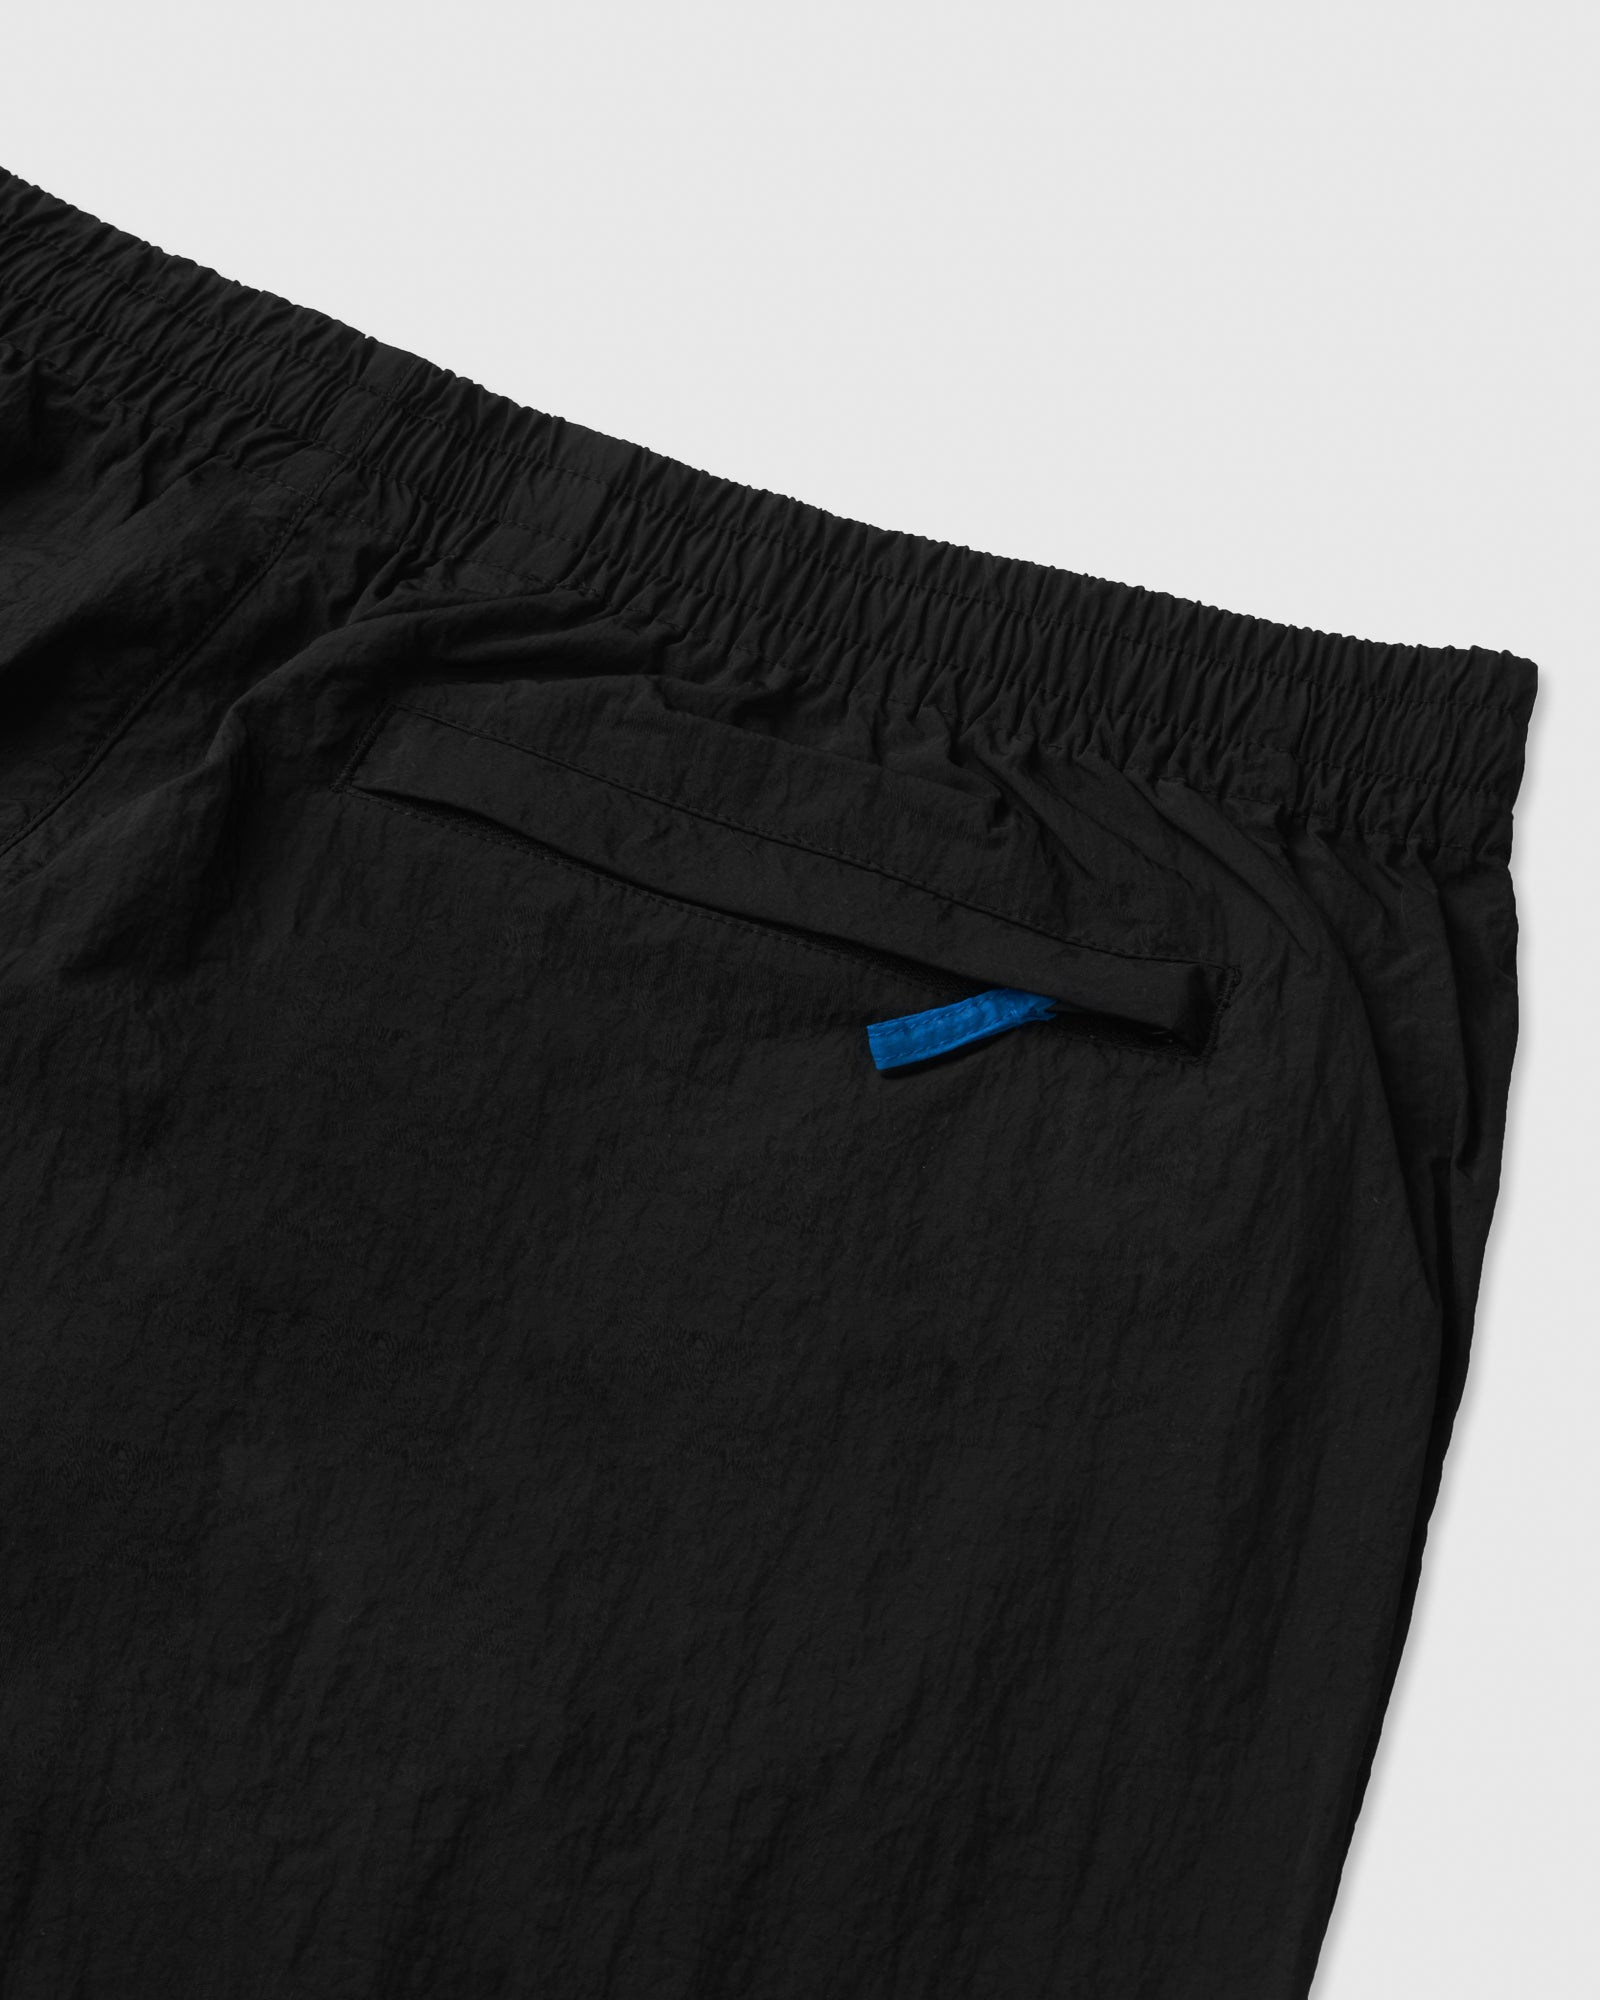 RUNNER NYLON PANT - BLACK IMAGE #3